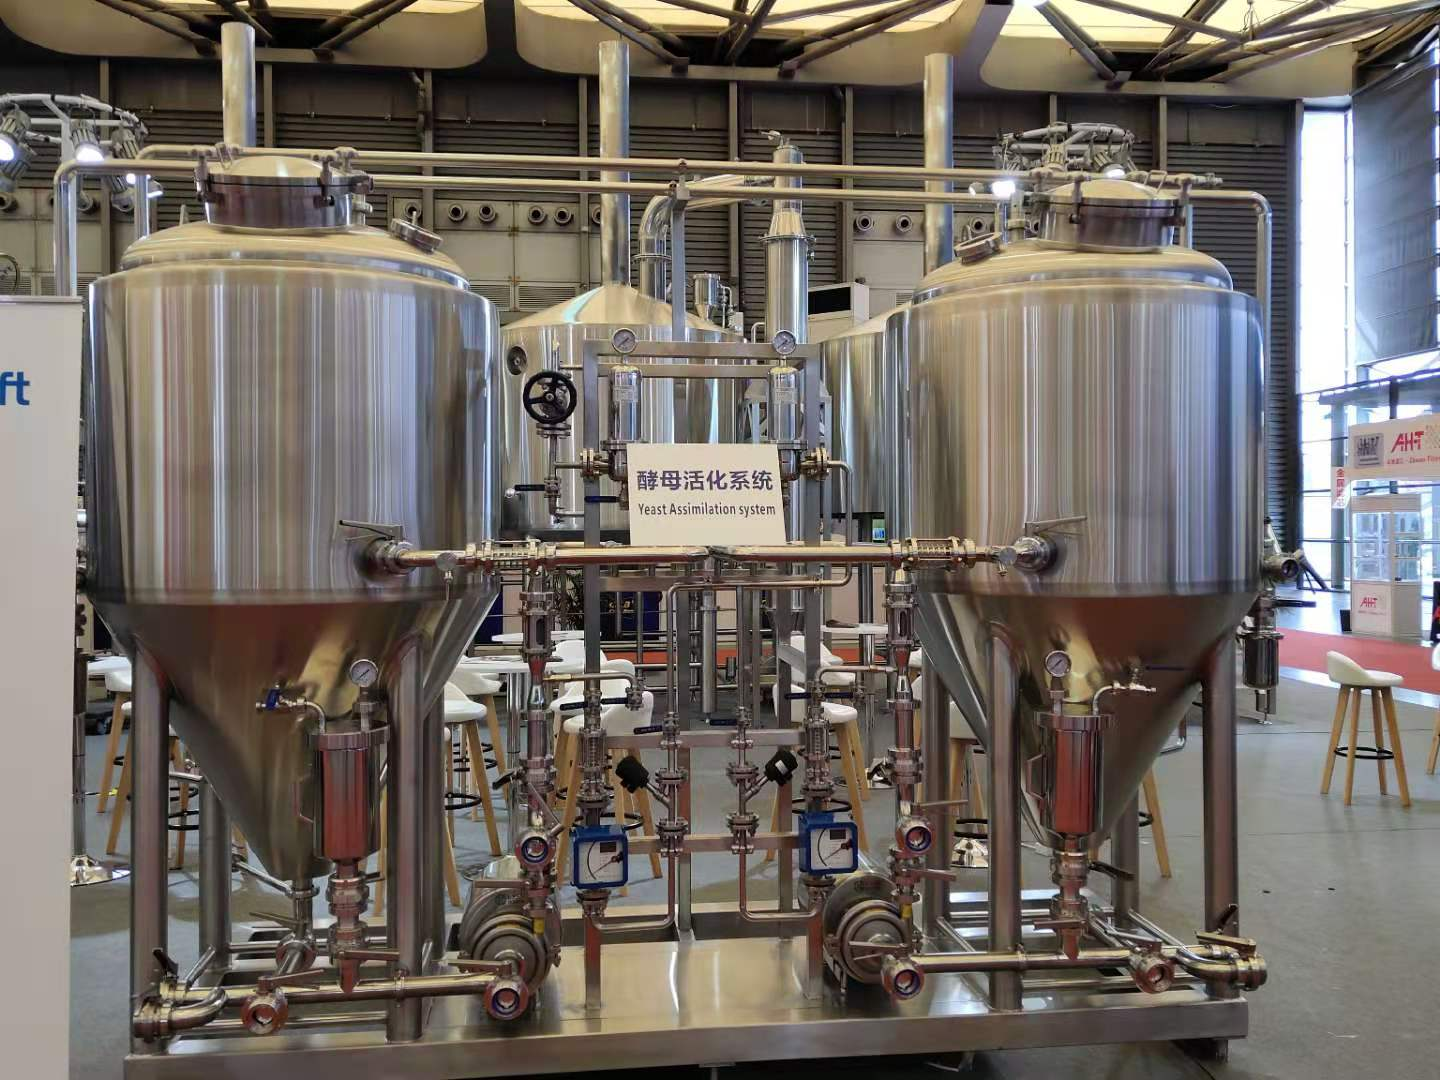 500L Yeast Assimilation System